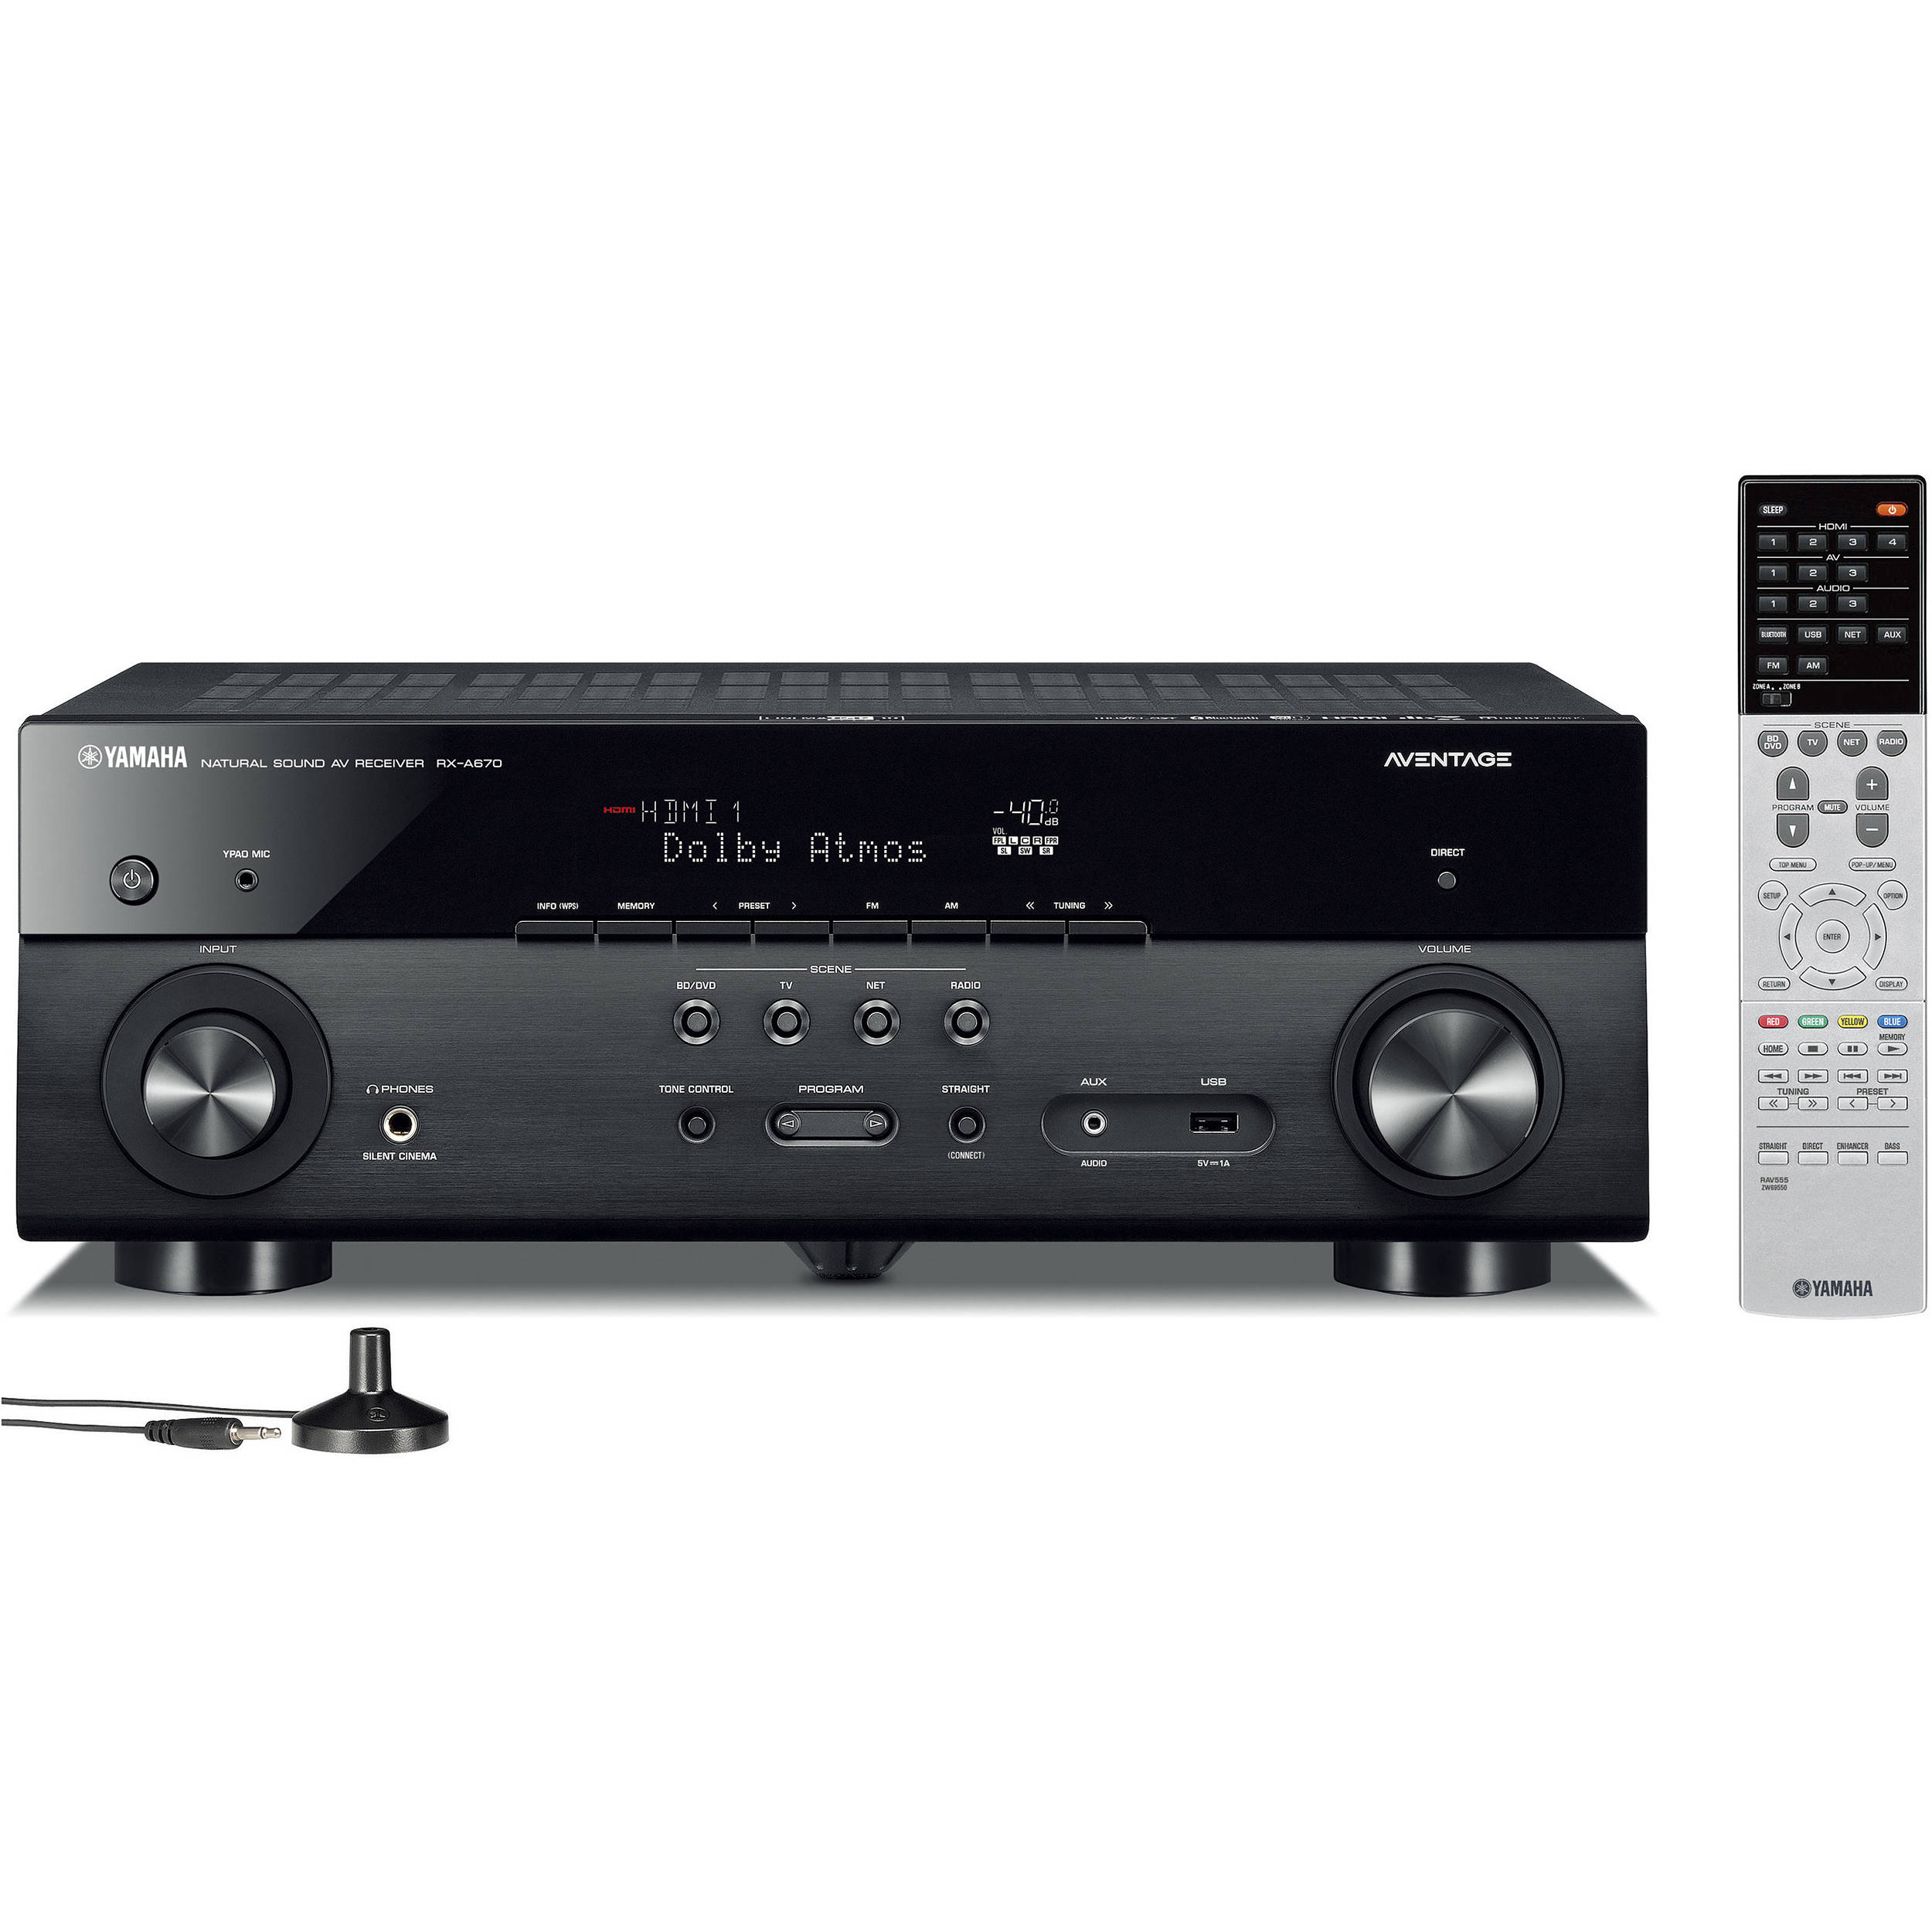 Yamaha AVENTAGE RX-A670 7 2-Channel Network A/V Receiver